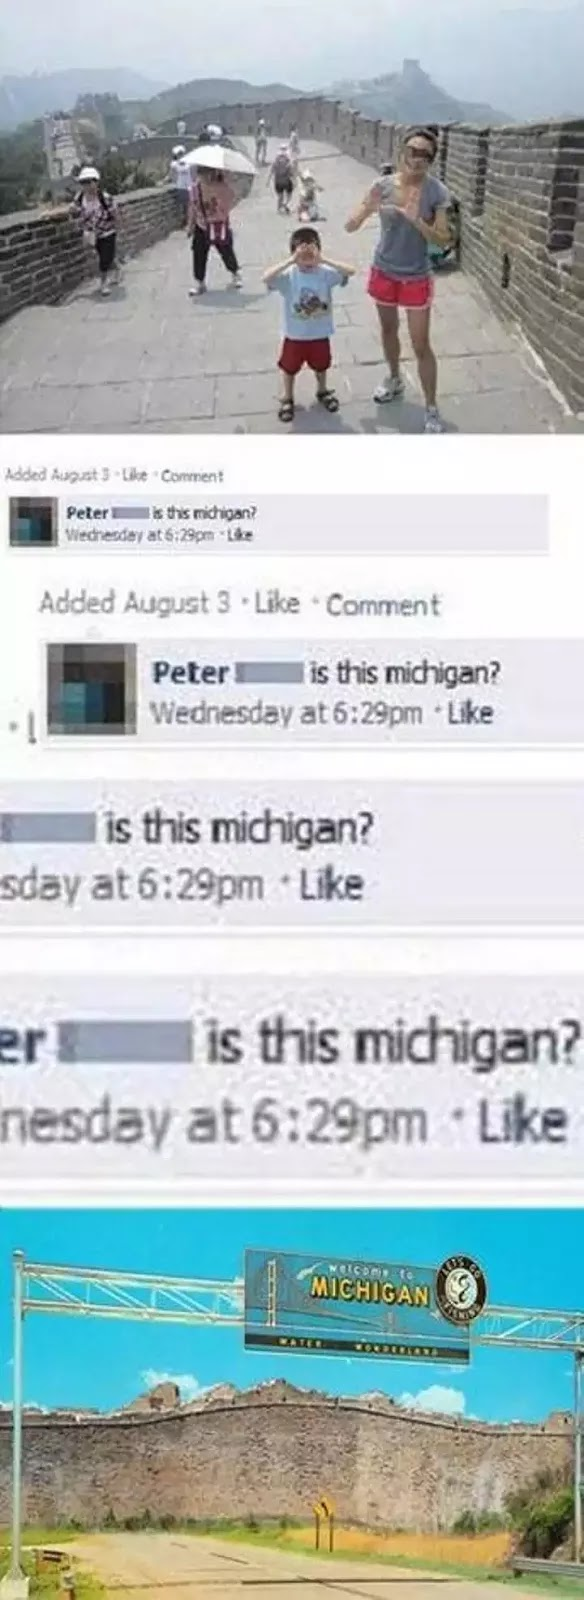 People, Is this Michigan?